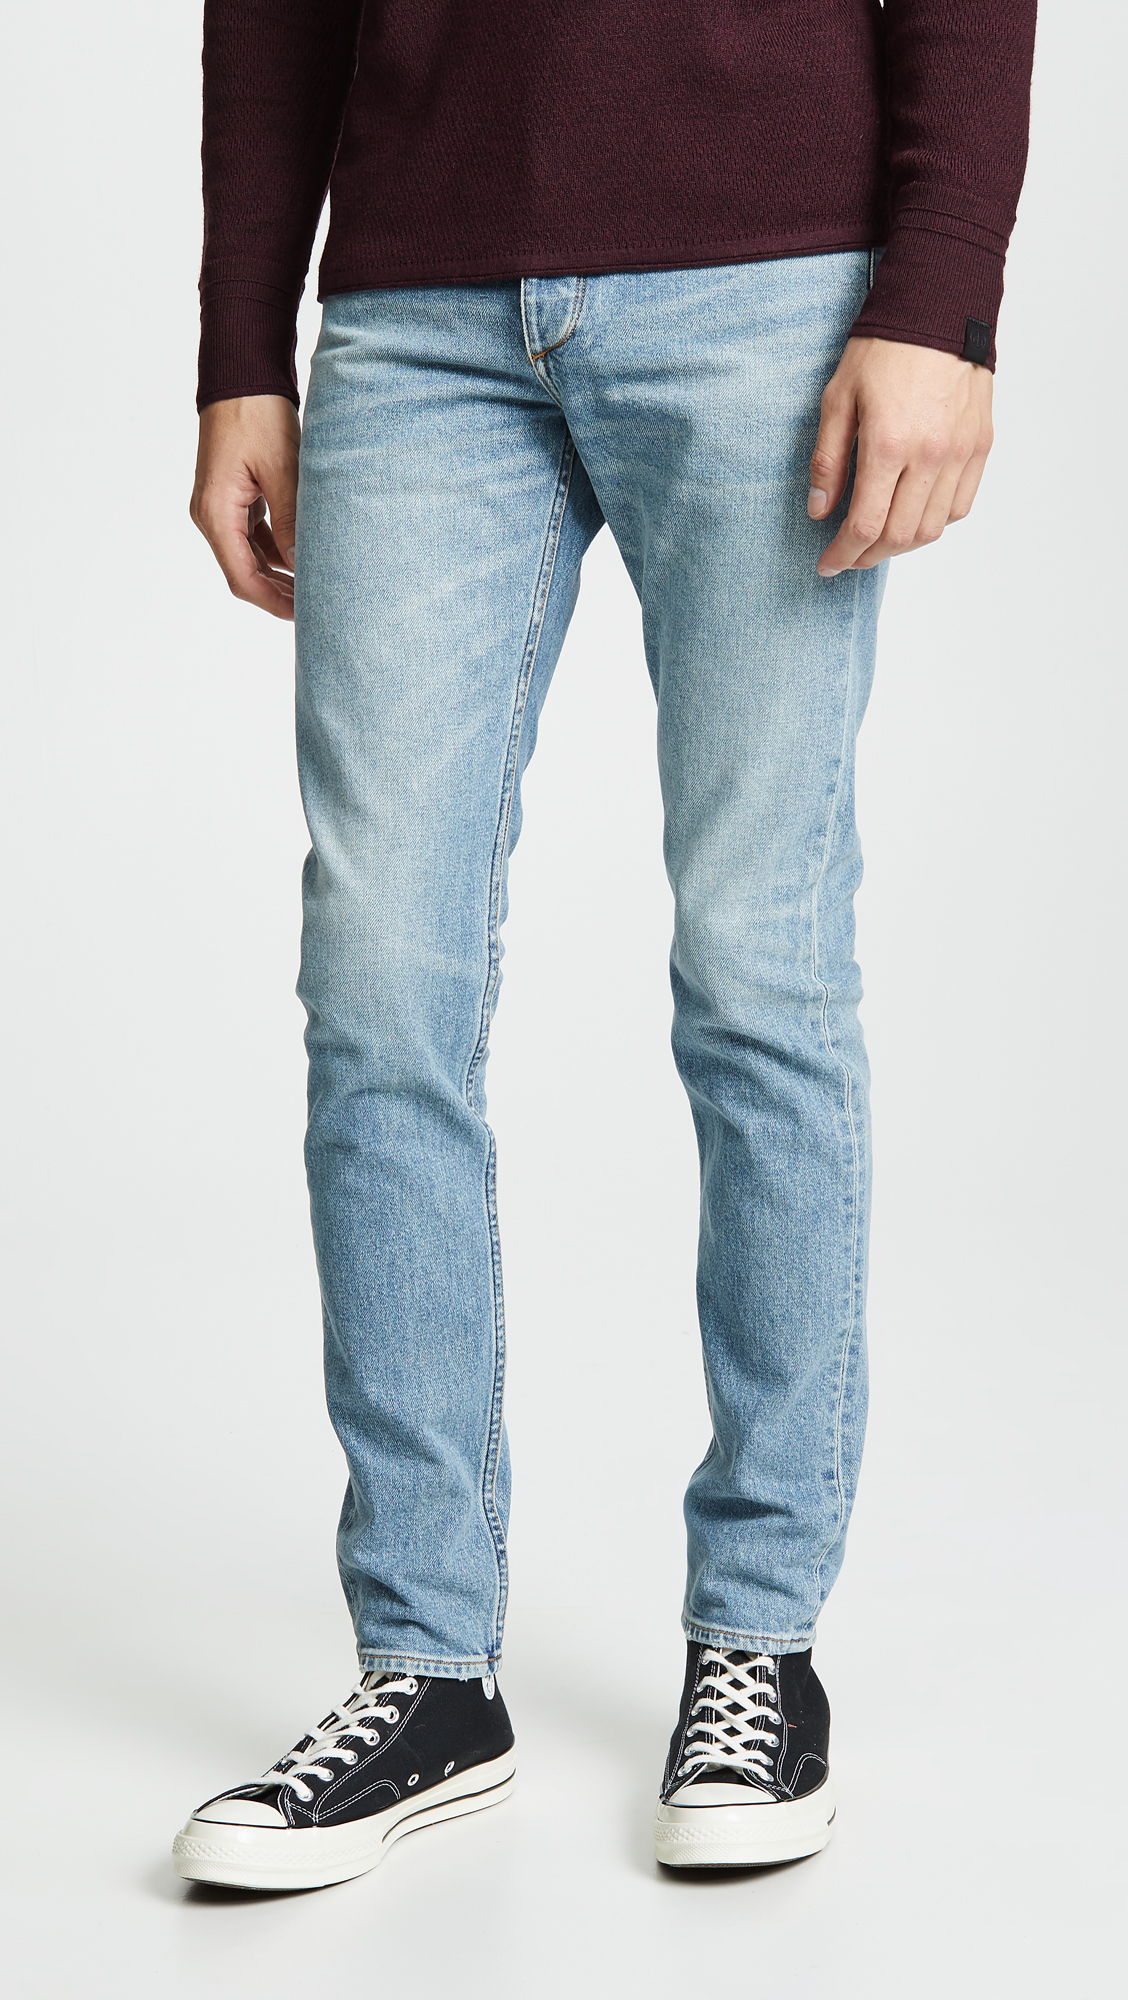 rag & bone jeans, skinny jeans, washed denim, stretch jeans, tapered jeans, slim fit jeans